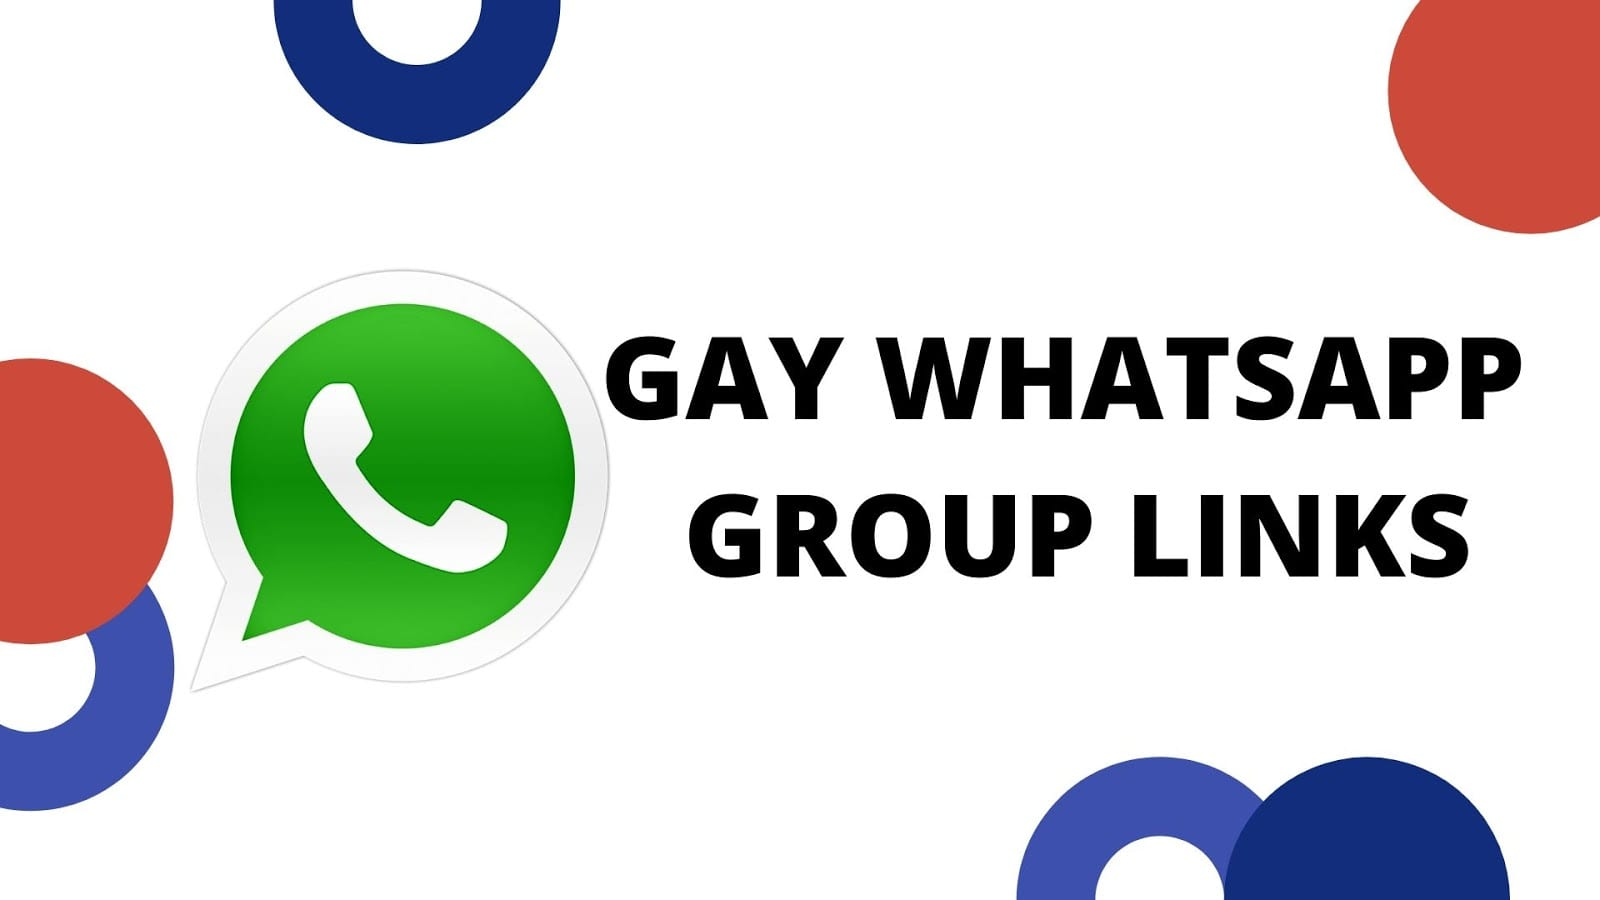 Whatsapp Groups - Join 180+ Gay whatsapp Group Links 2020 {Updated} - 18+ Gay Whatsapp Groups Link To Join